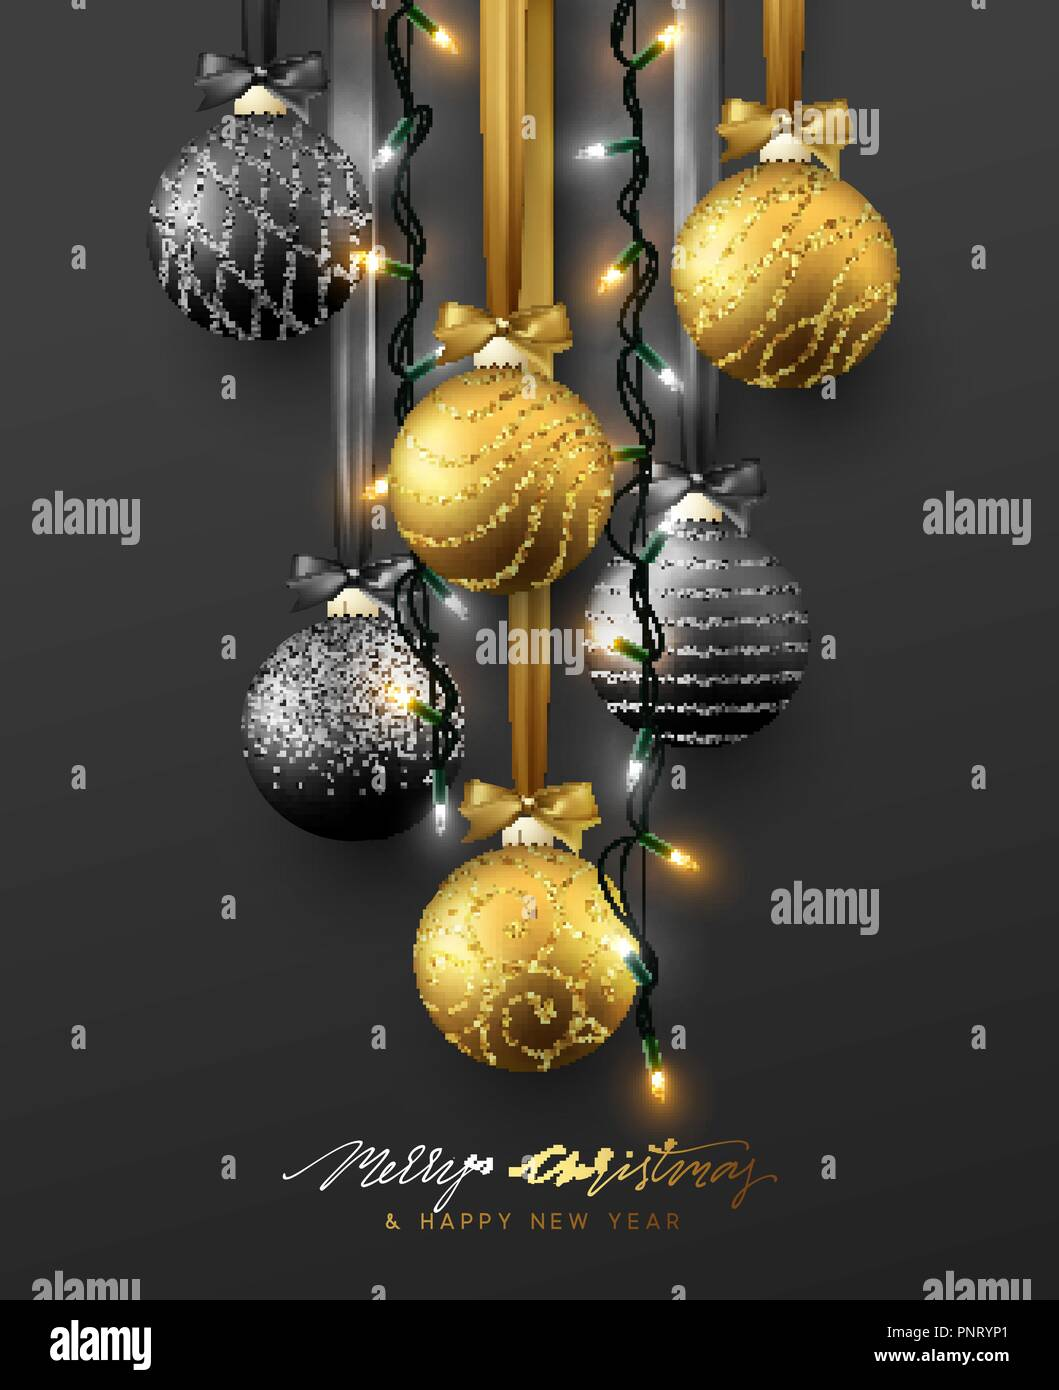 Traditional Christmas Decoration Hanging On Ribbon Xmas Balls In Gold And Black Colors And Christmas Lights Garland Realistic View Of Object Isolated On